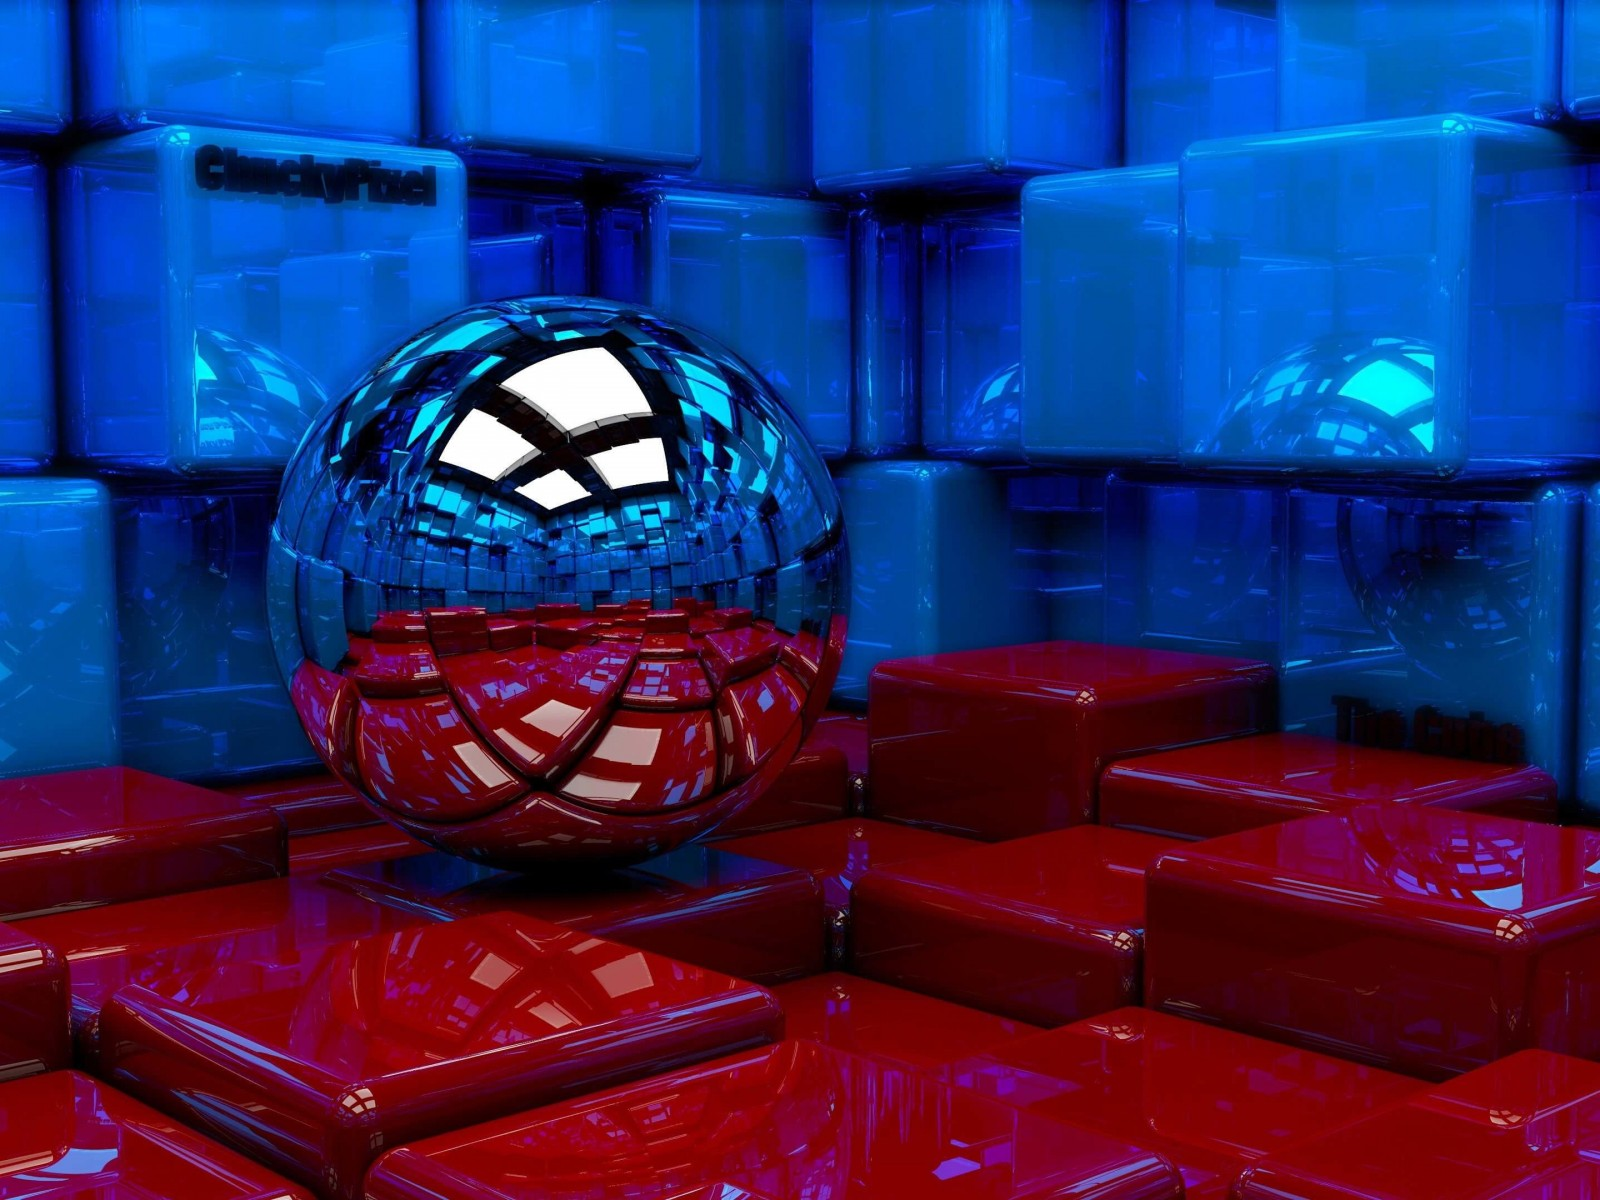 Metallic Sphere Reflecting The Cube Room Wallpaper for Desktop 1600x1200